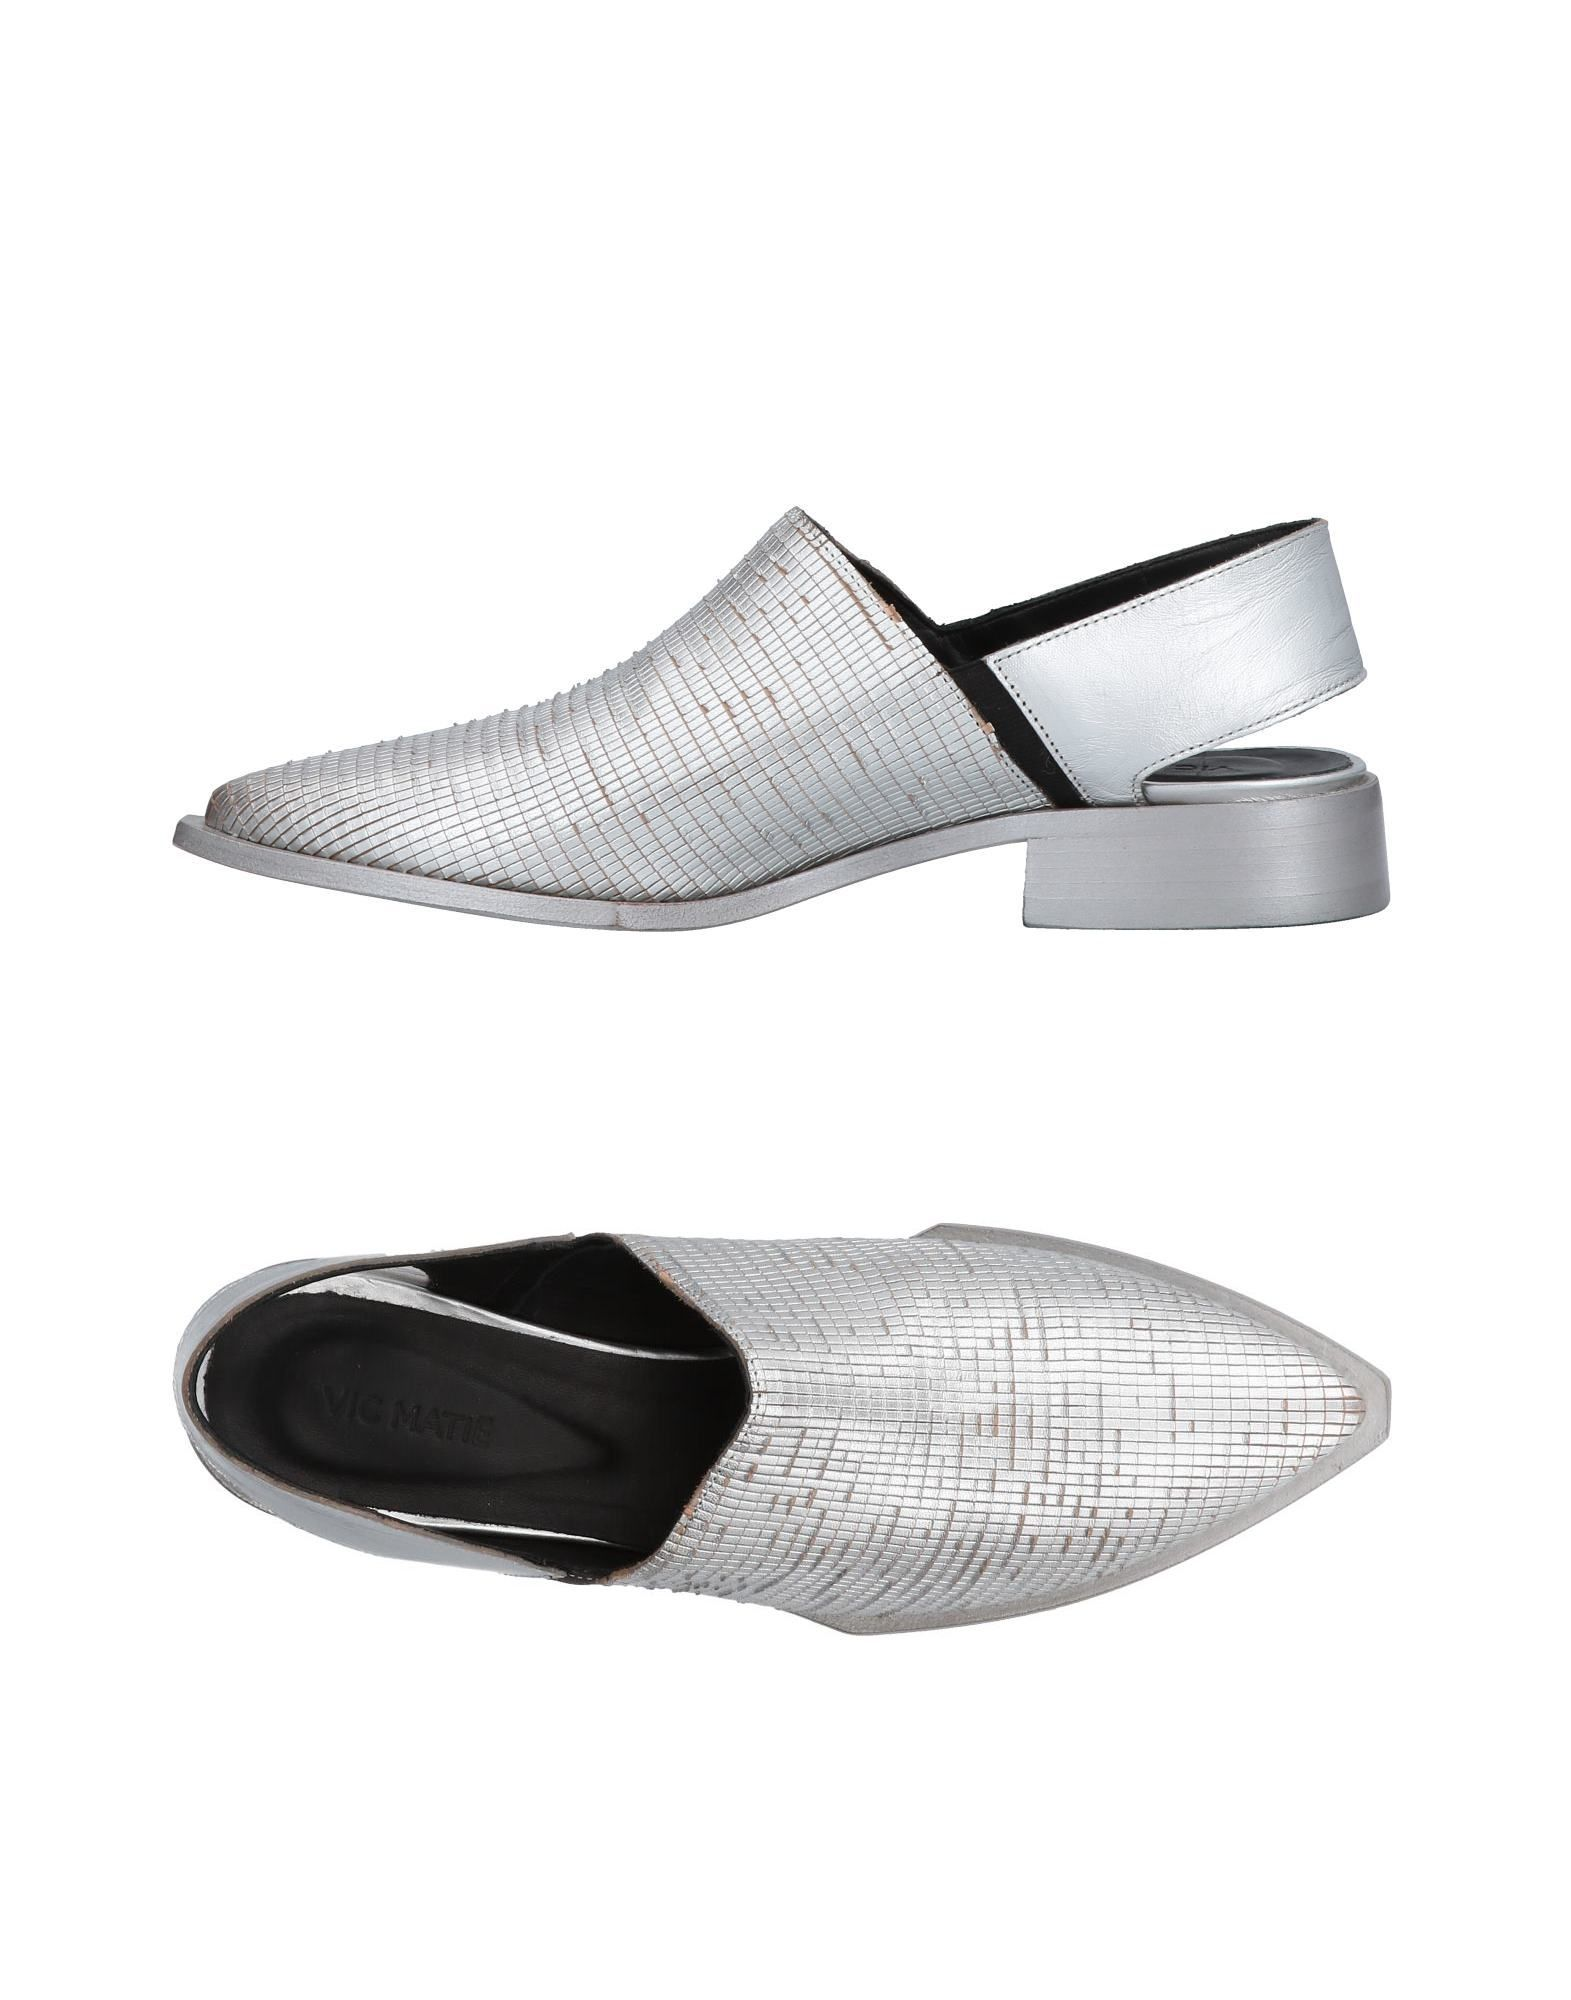 Vic Matiē Loafers Loafers - Women Vic Matiē Loafers Loafers online on  Australia - 11454833AP 819a03